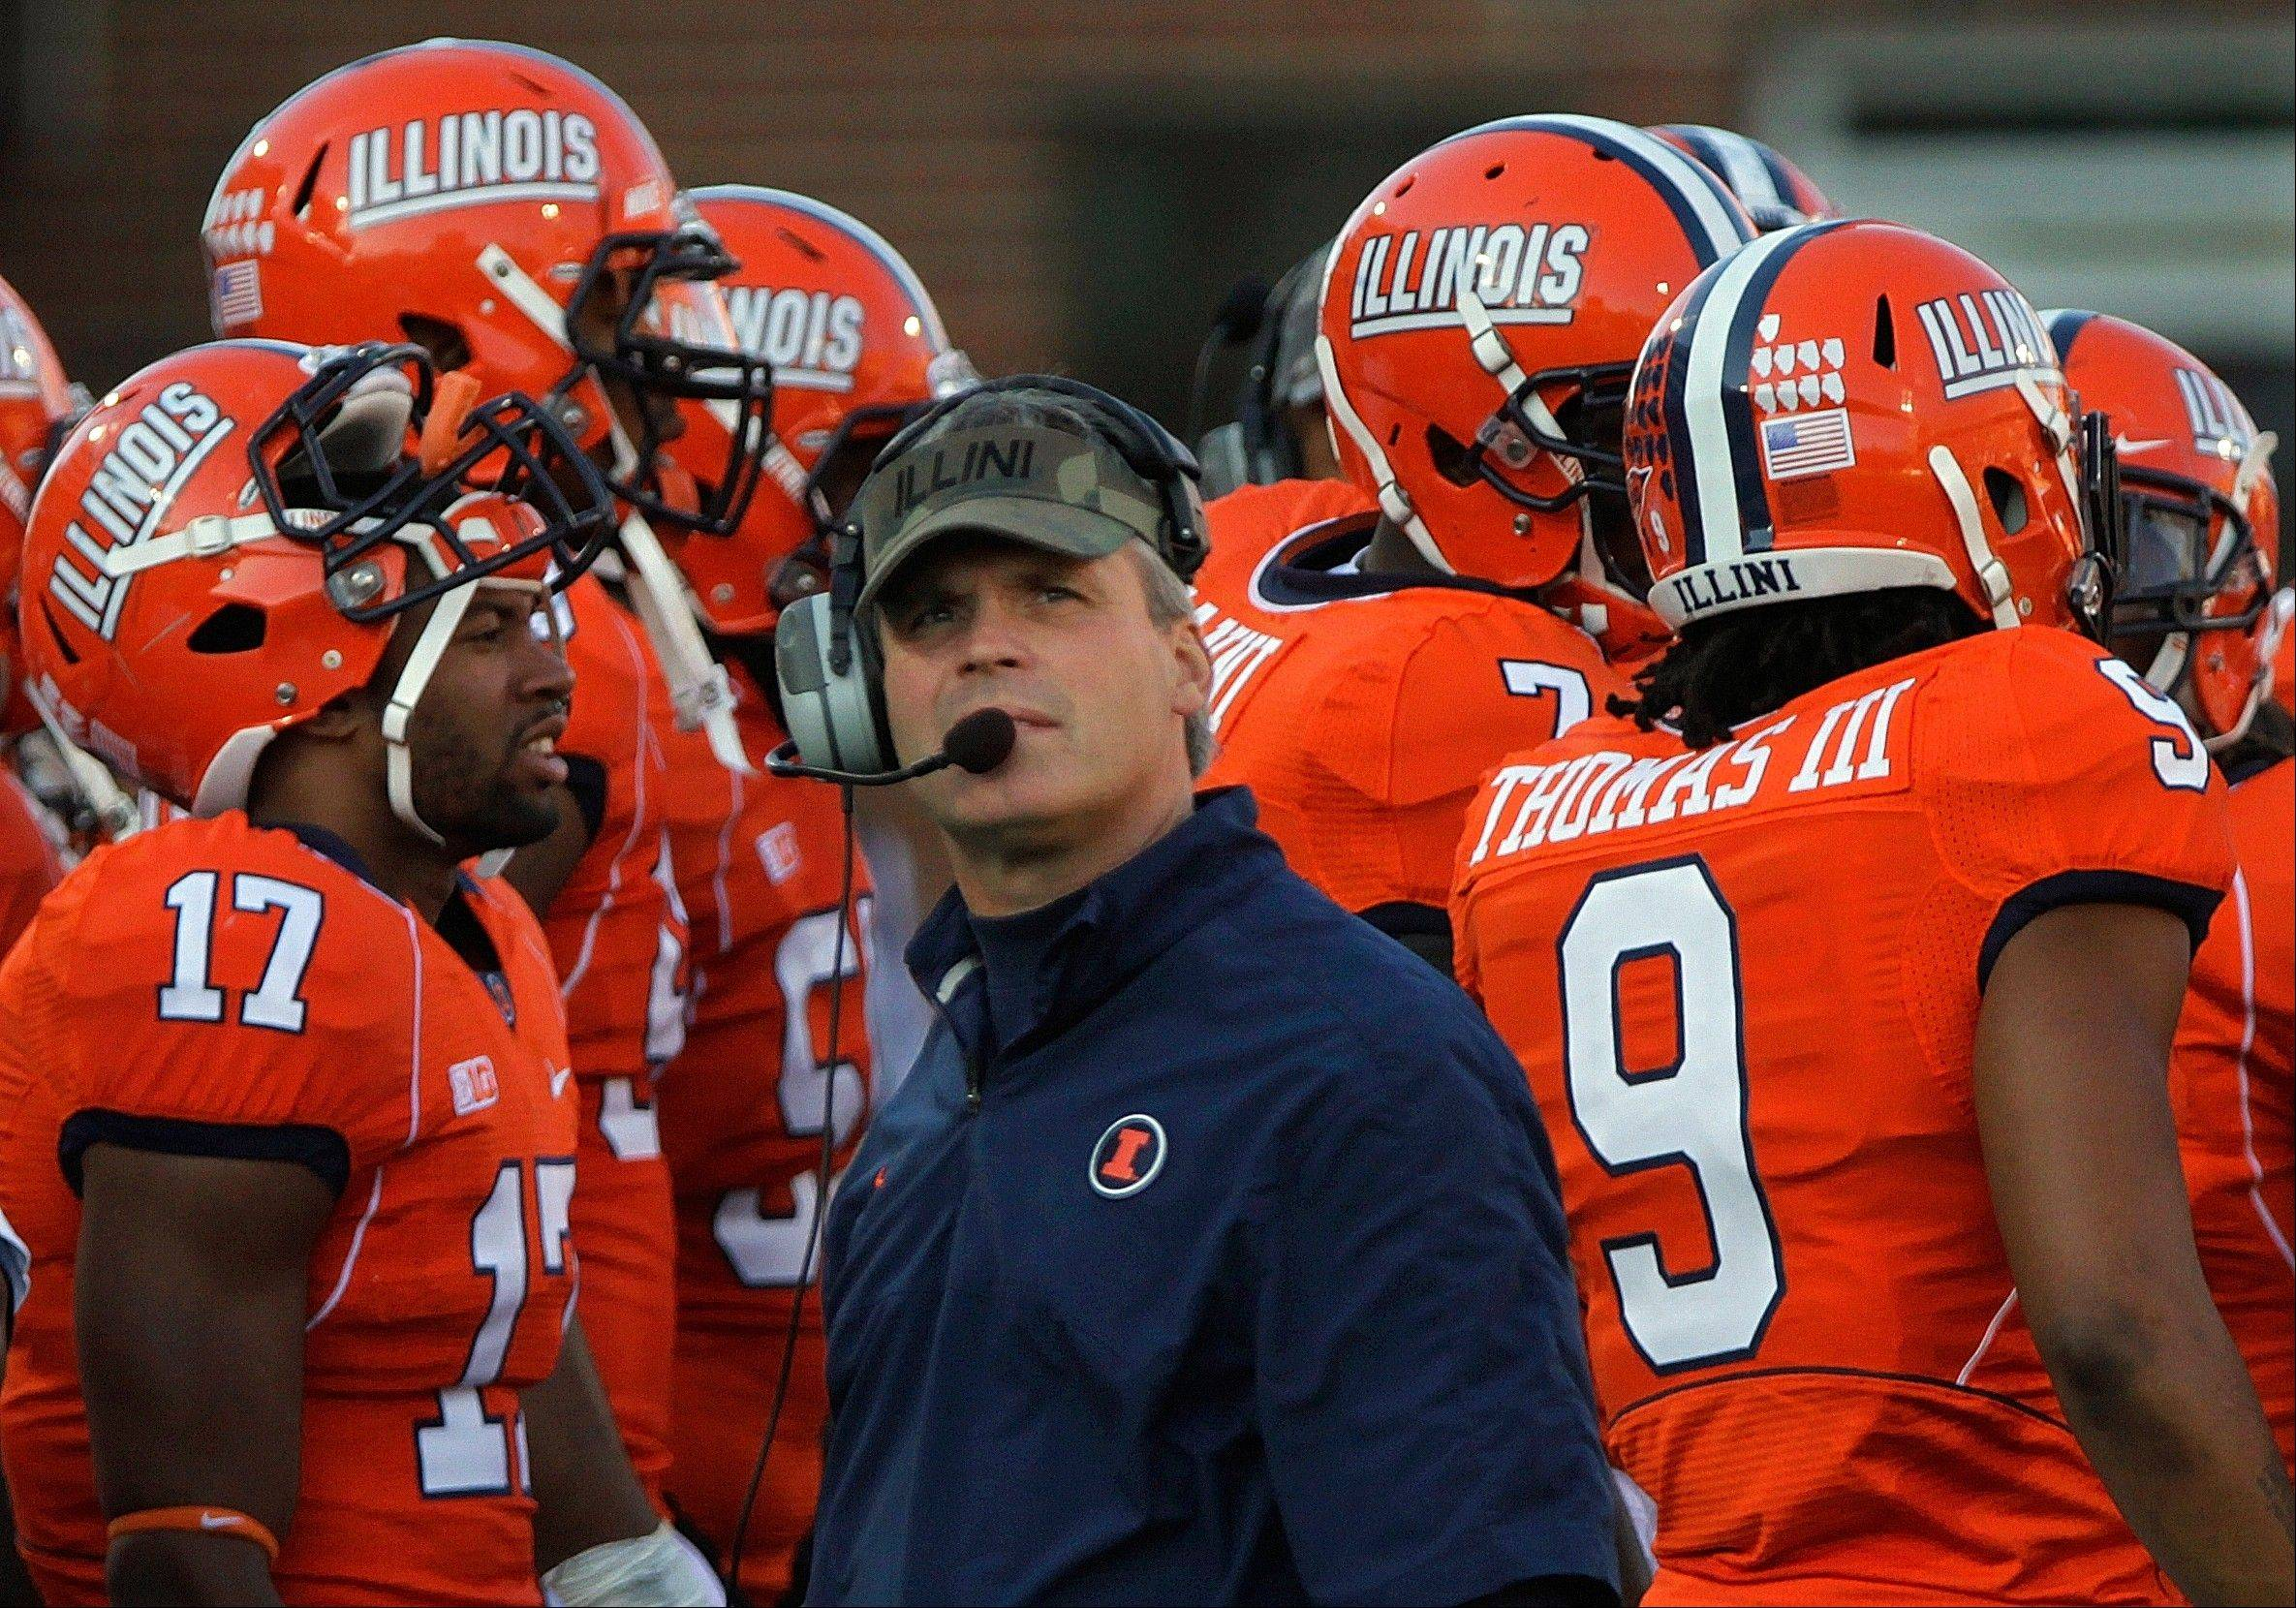 Illinois head coach Tim Beckman isn�t happy with his team�s woeful offense, and said there may be personnel changes this week.